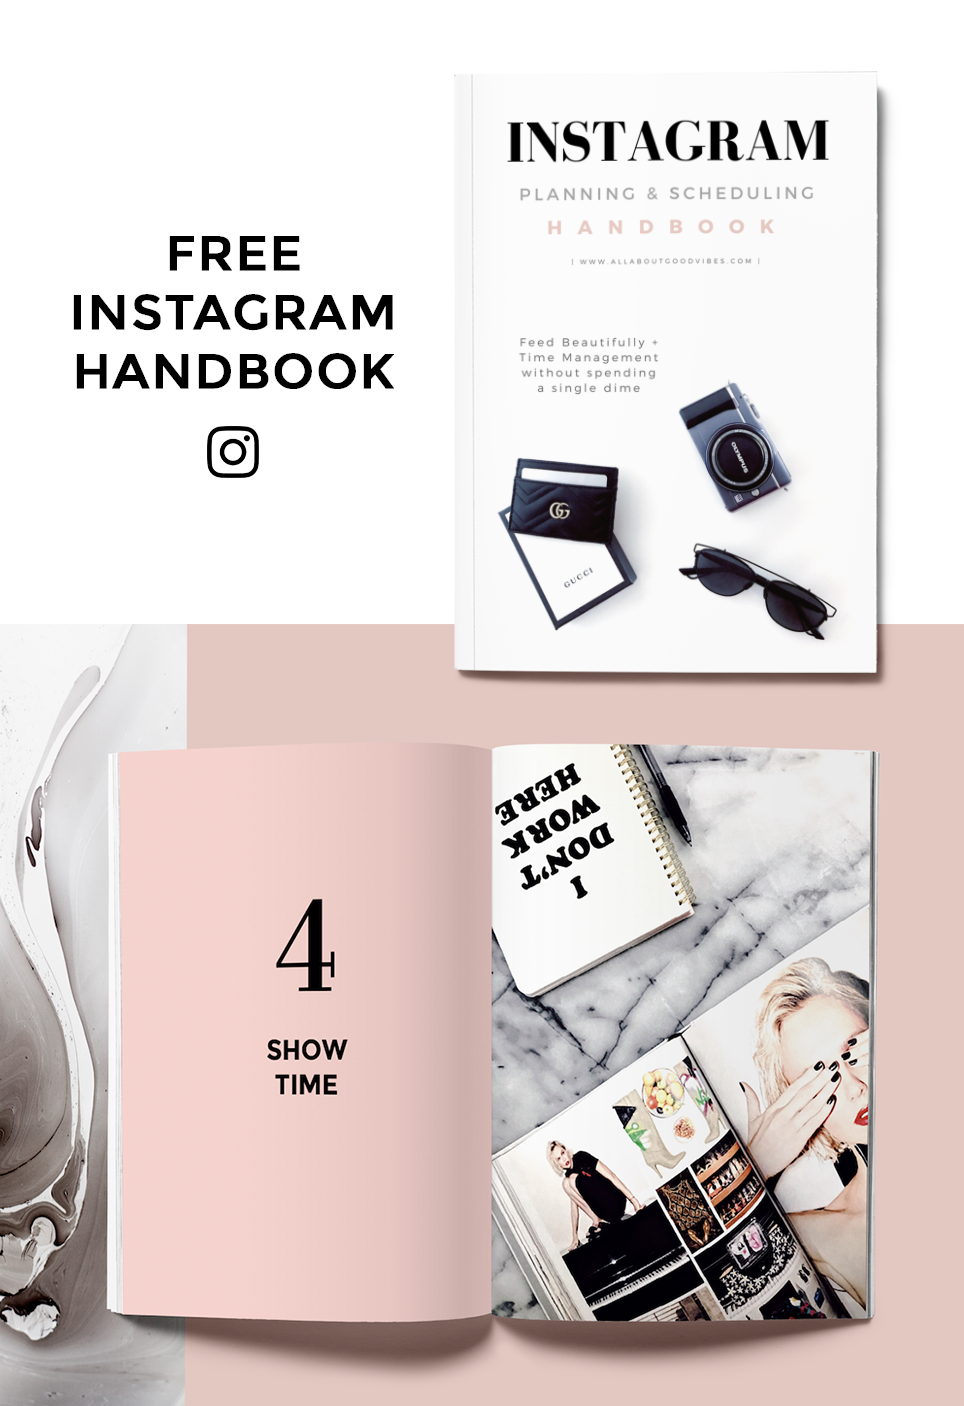 INSTAGRAM PLANNING HANDBOOK FREE DOWNLOAD